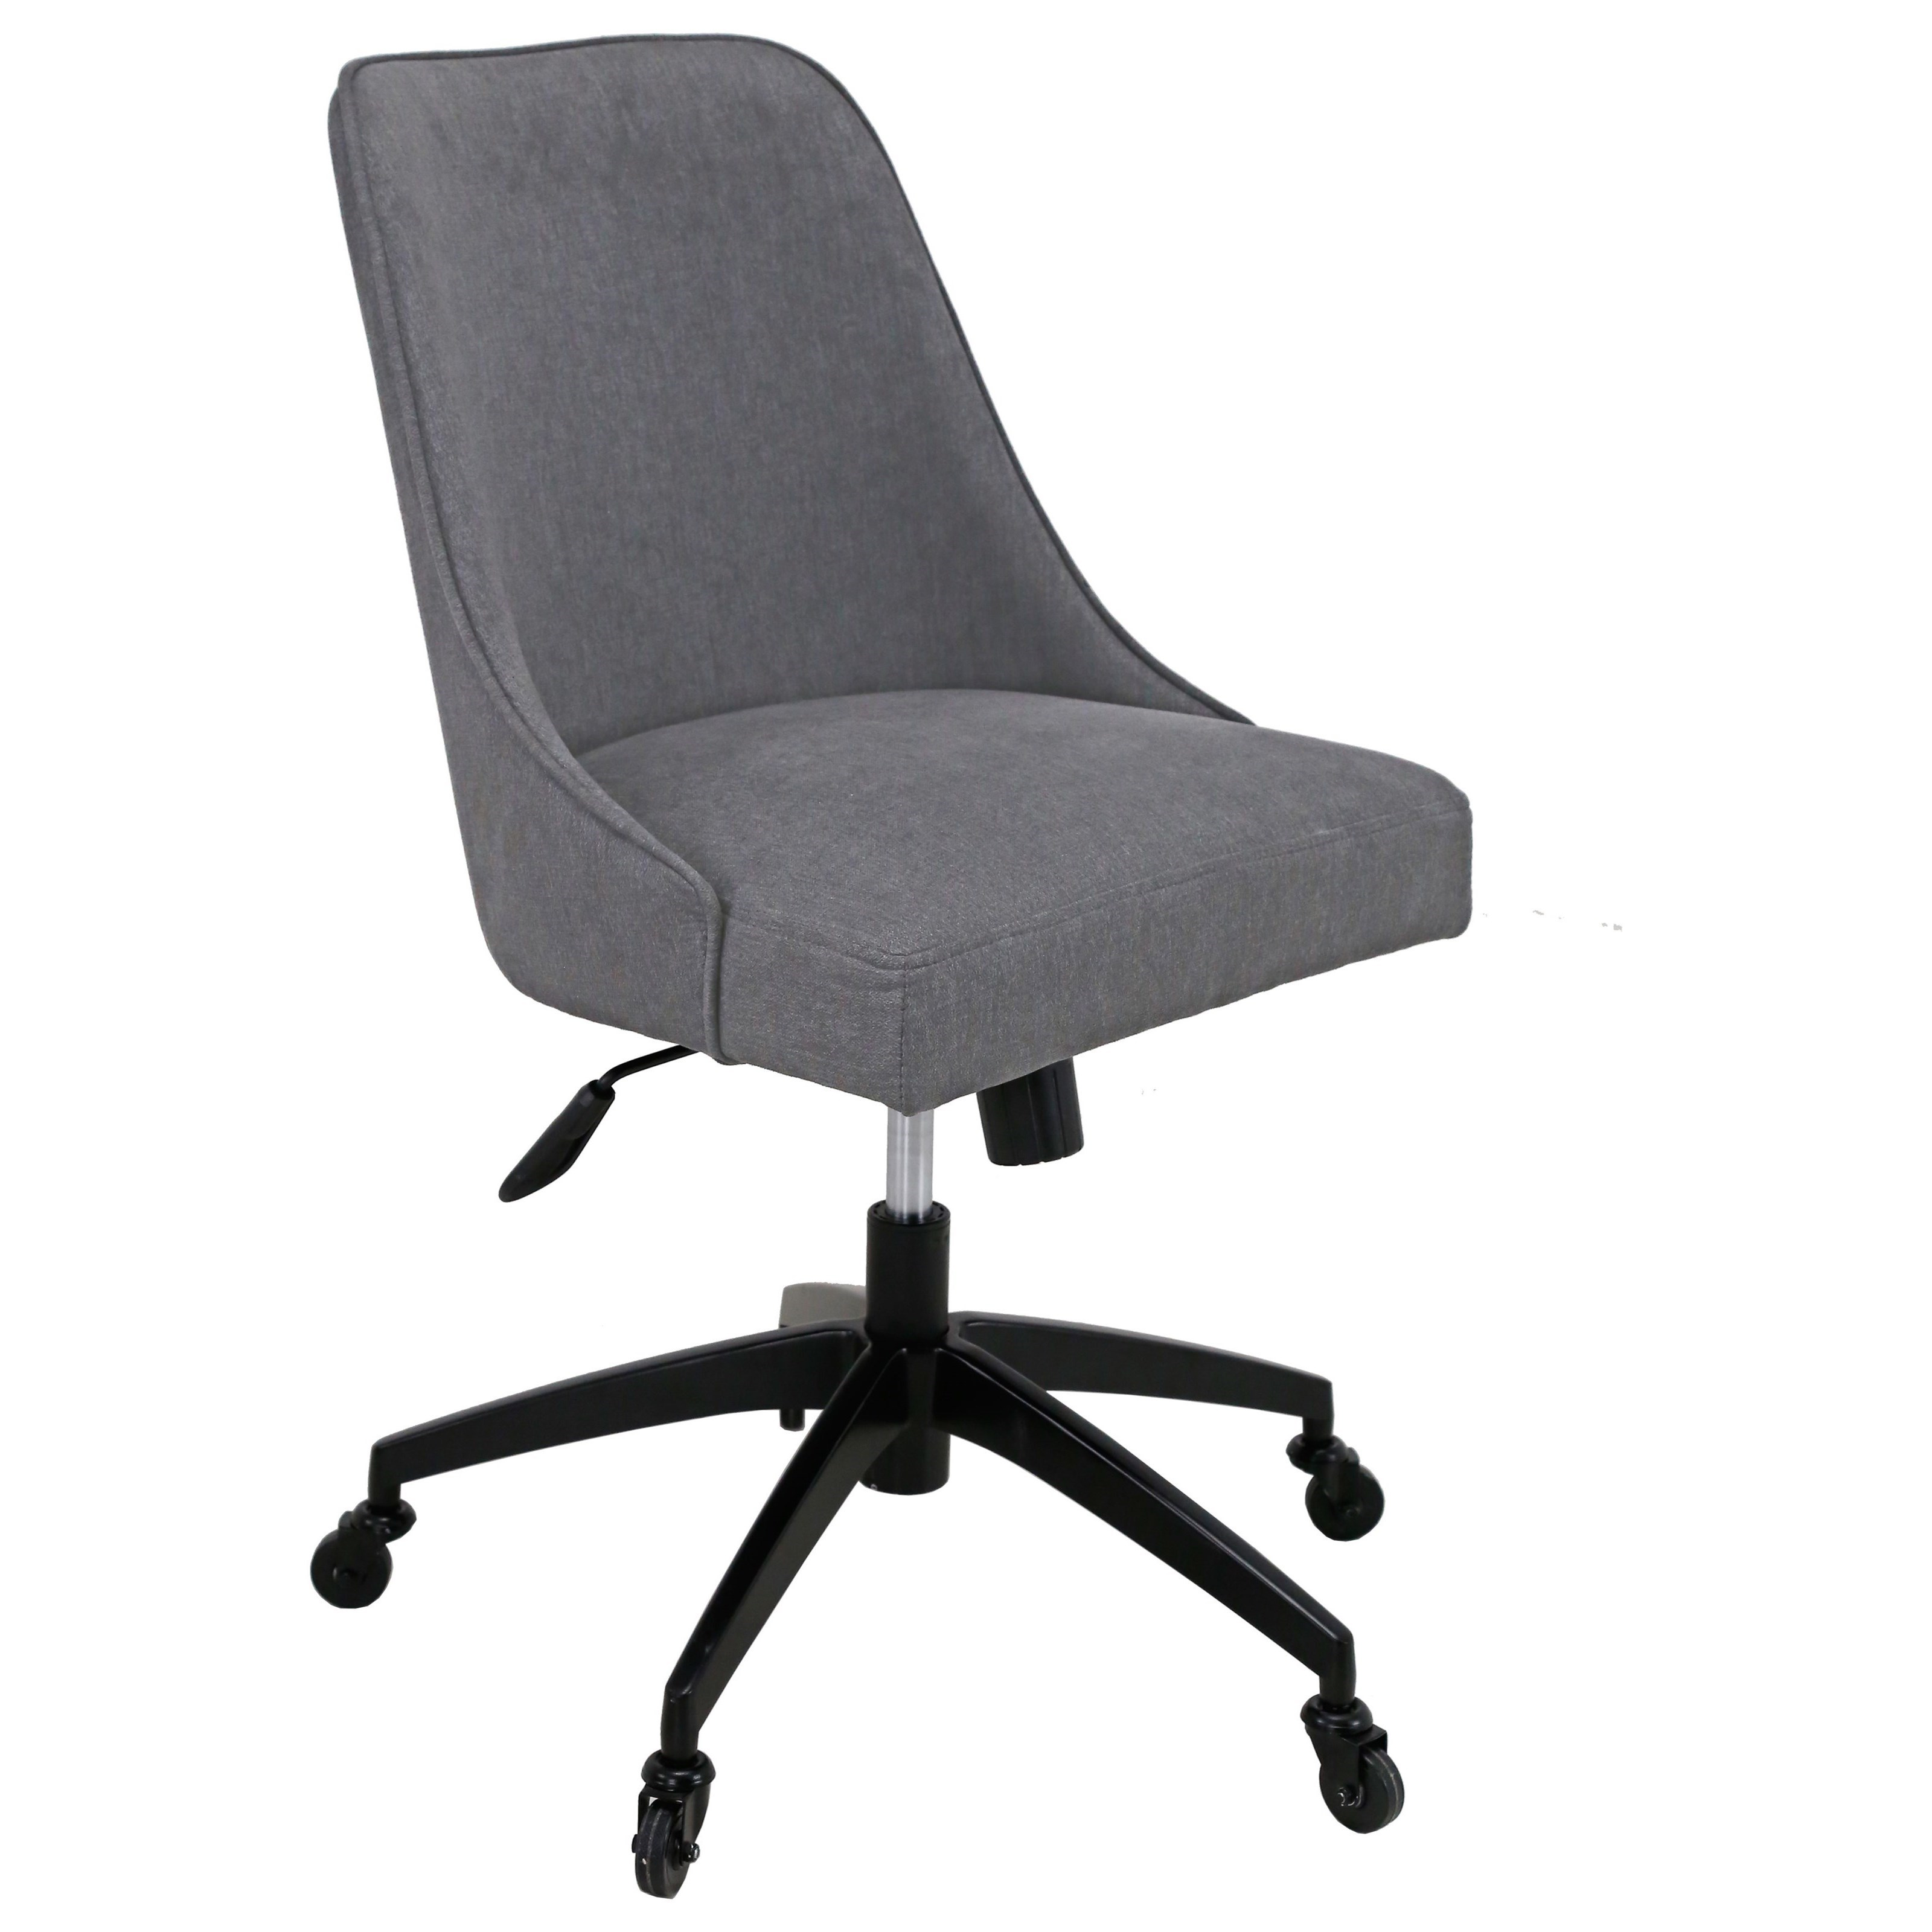 Image of: Steve Silver Kinsley Swivel Upholstered Desk Chair In Gray Fabric A1 Furniture Mattress Office Task Chairs